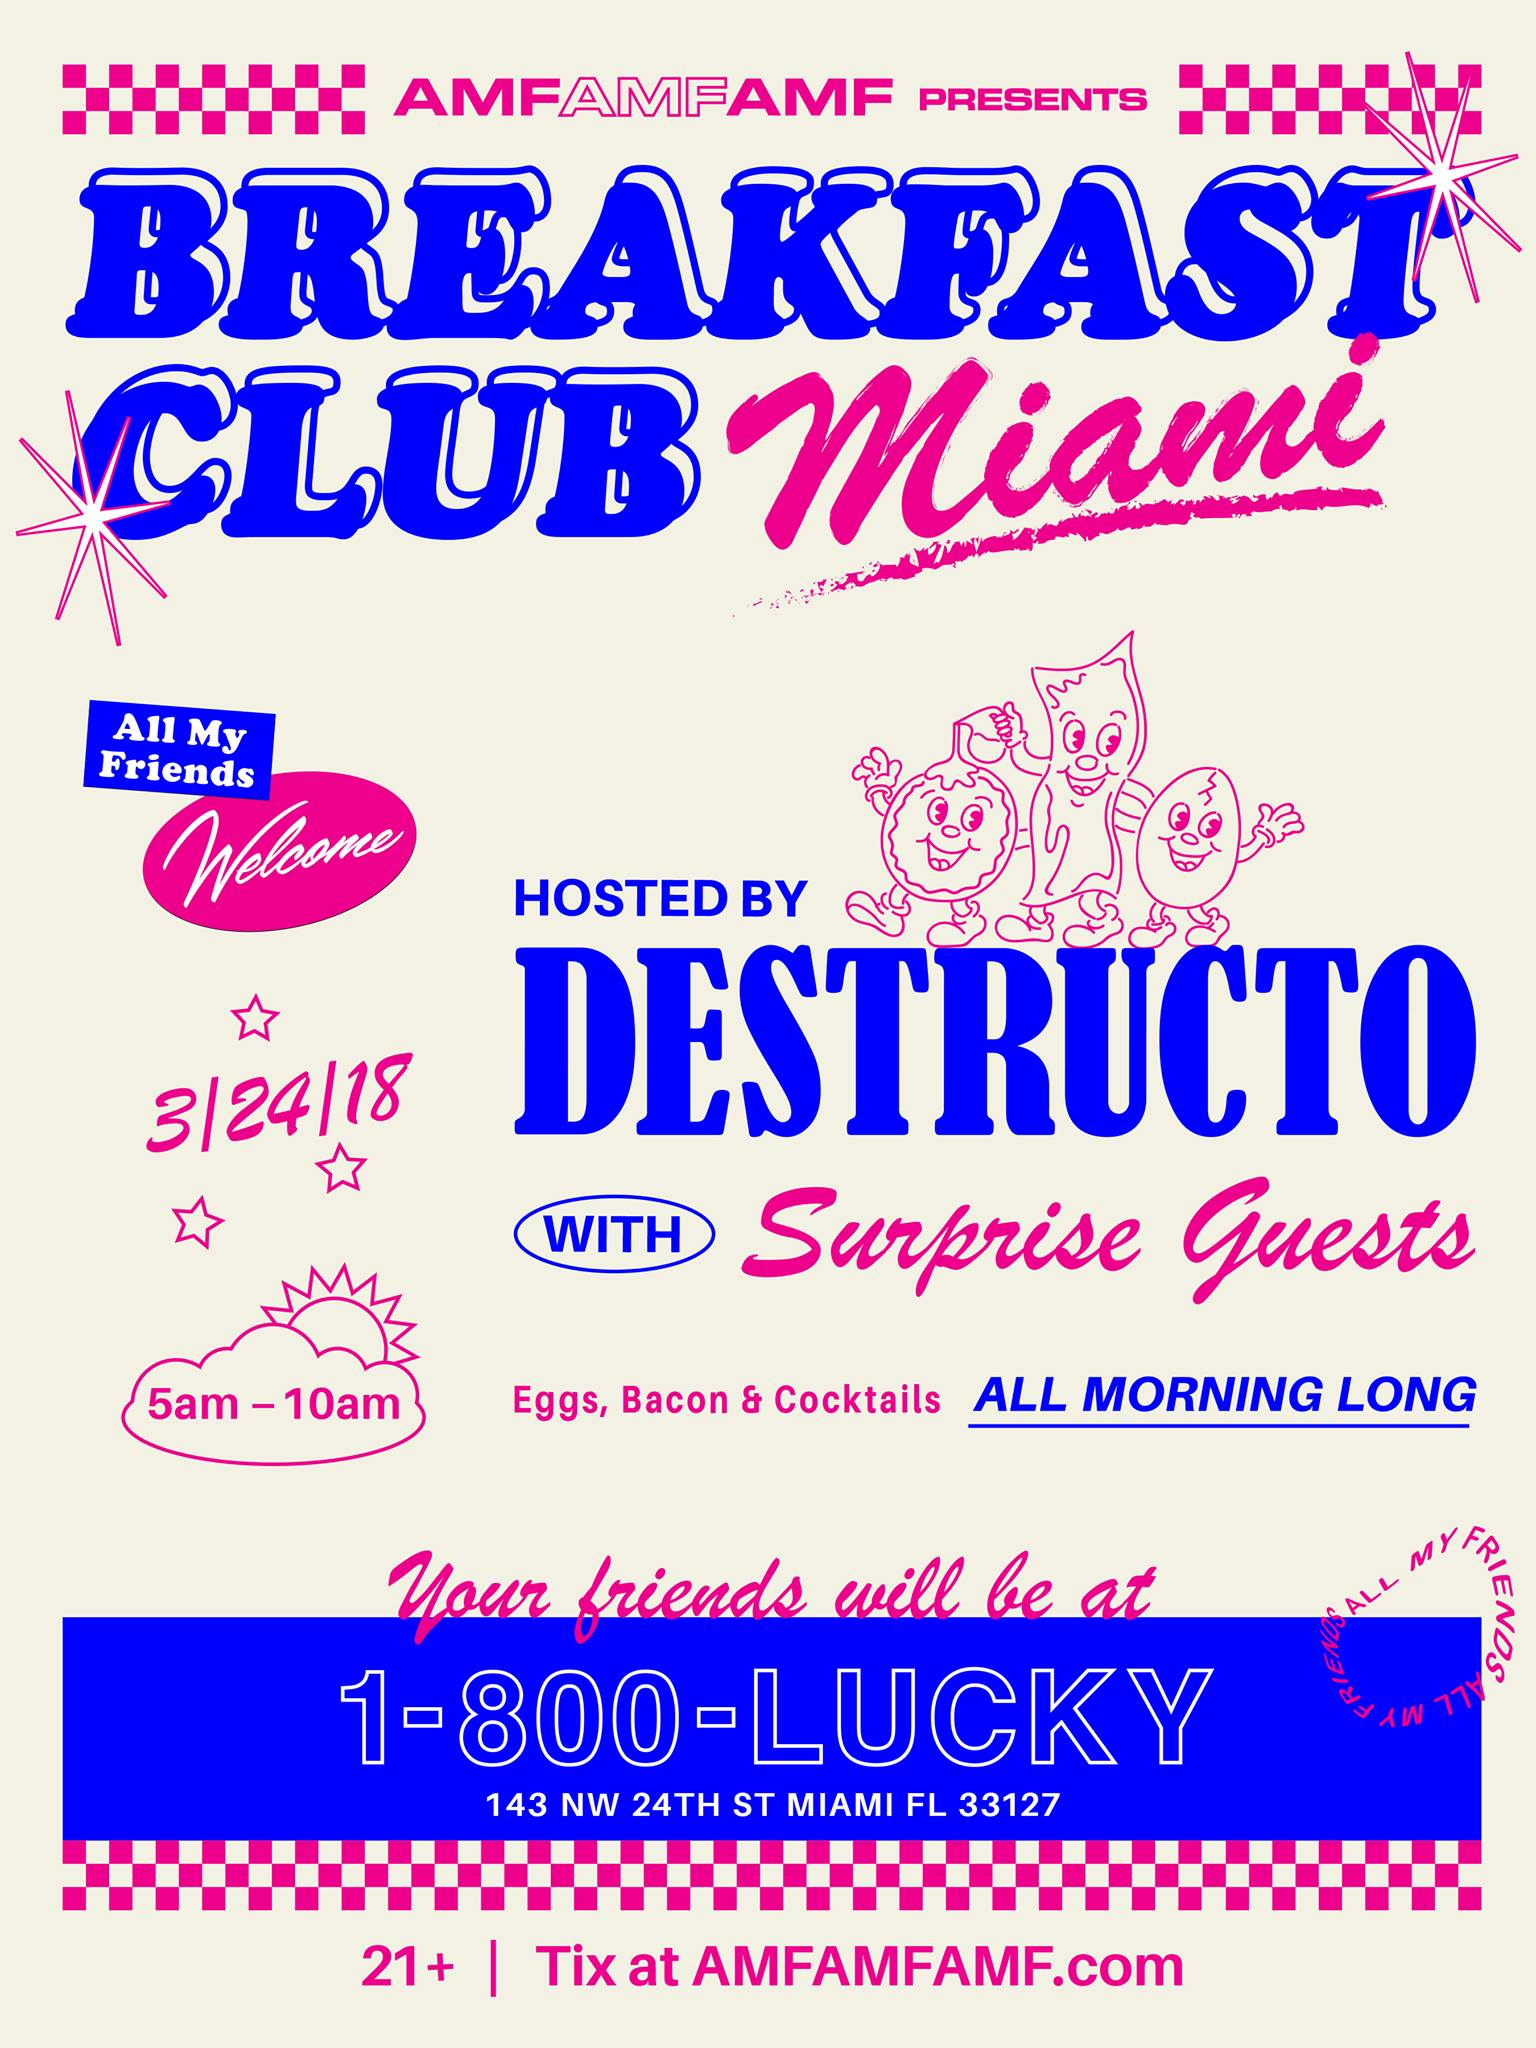 AMFAMFAMF Presents Breakfast Club Miami Image